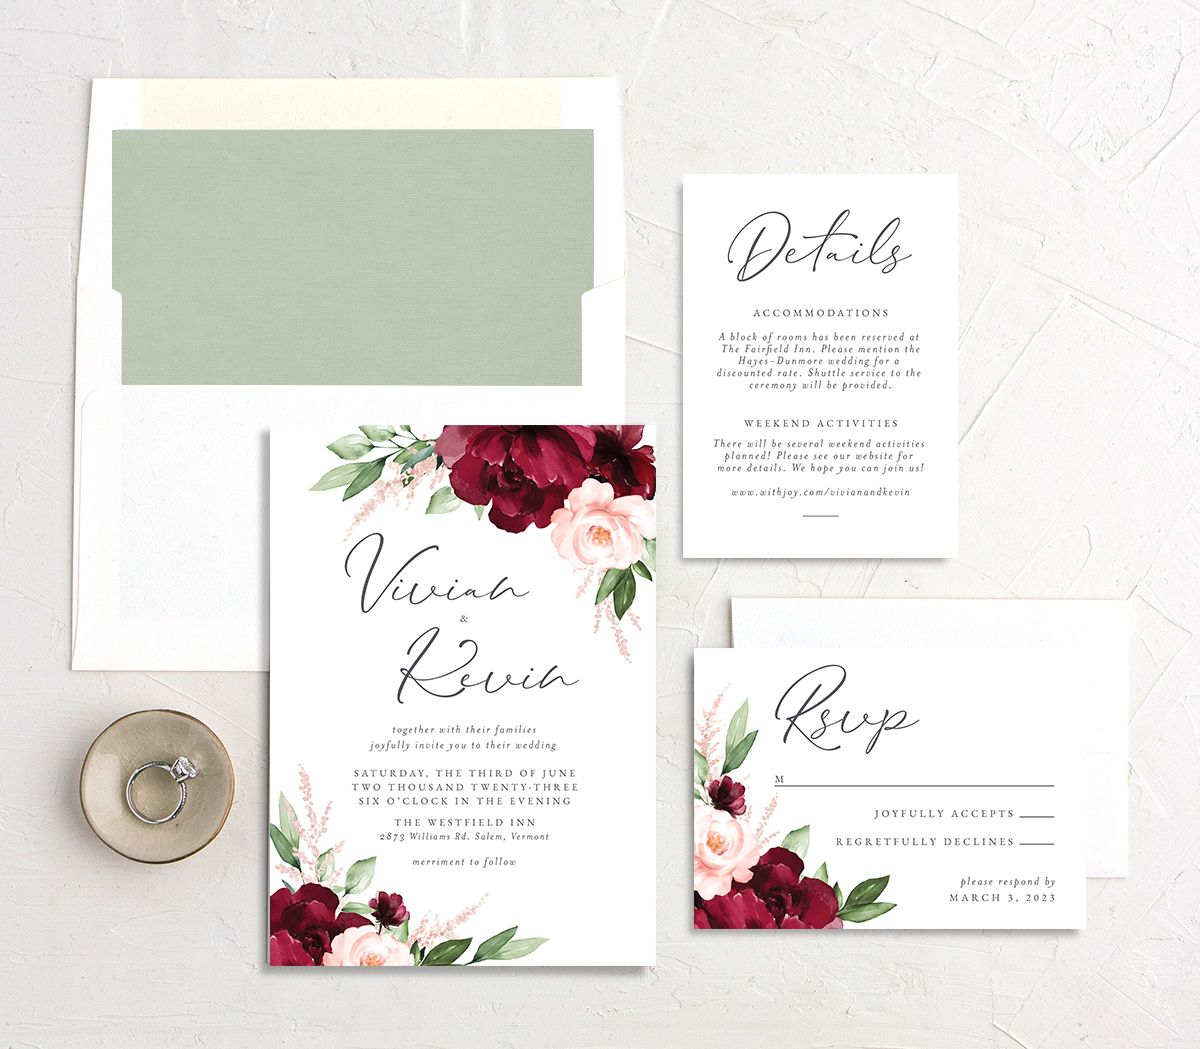 Beloved Floral Wedding Invitation suite in red